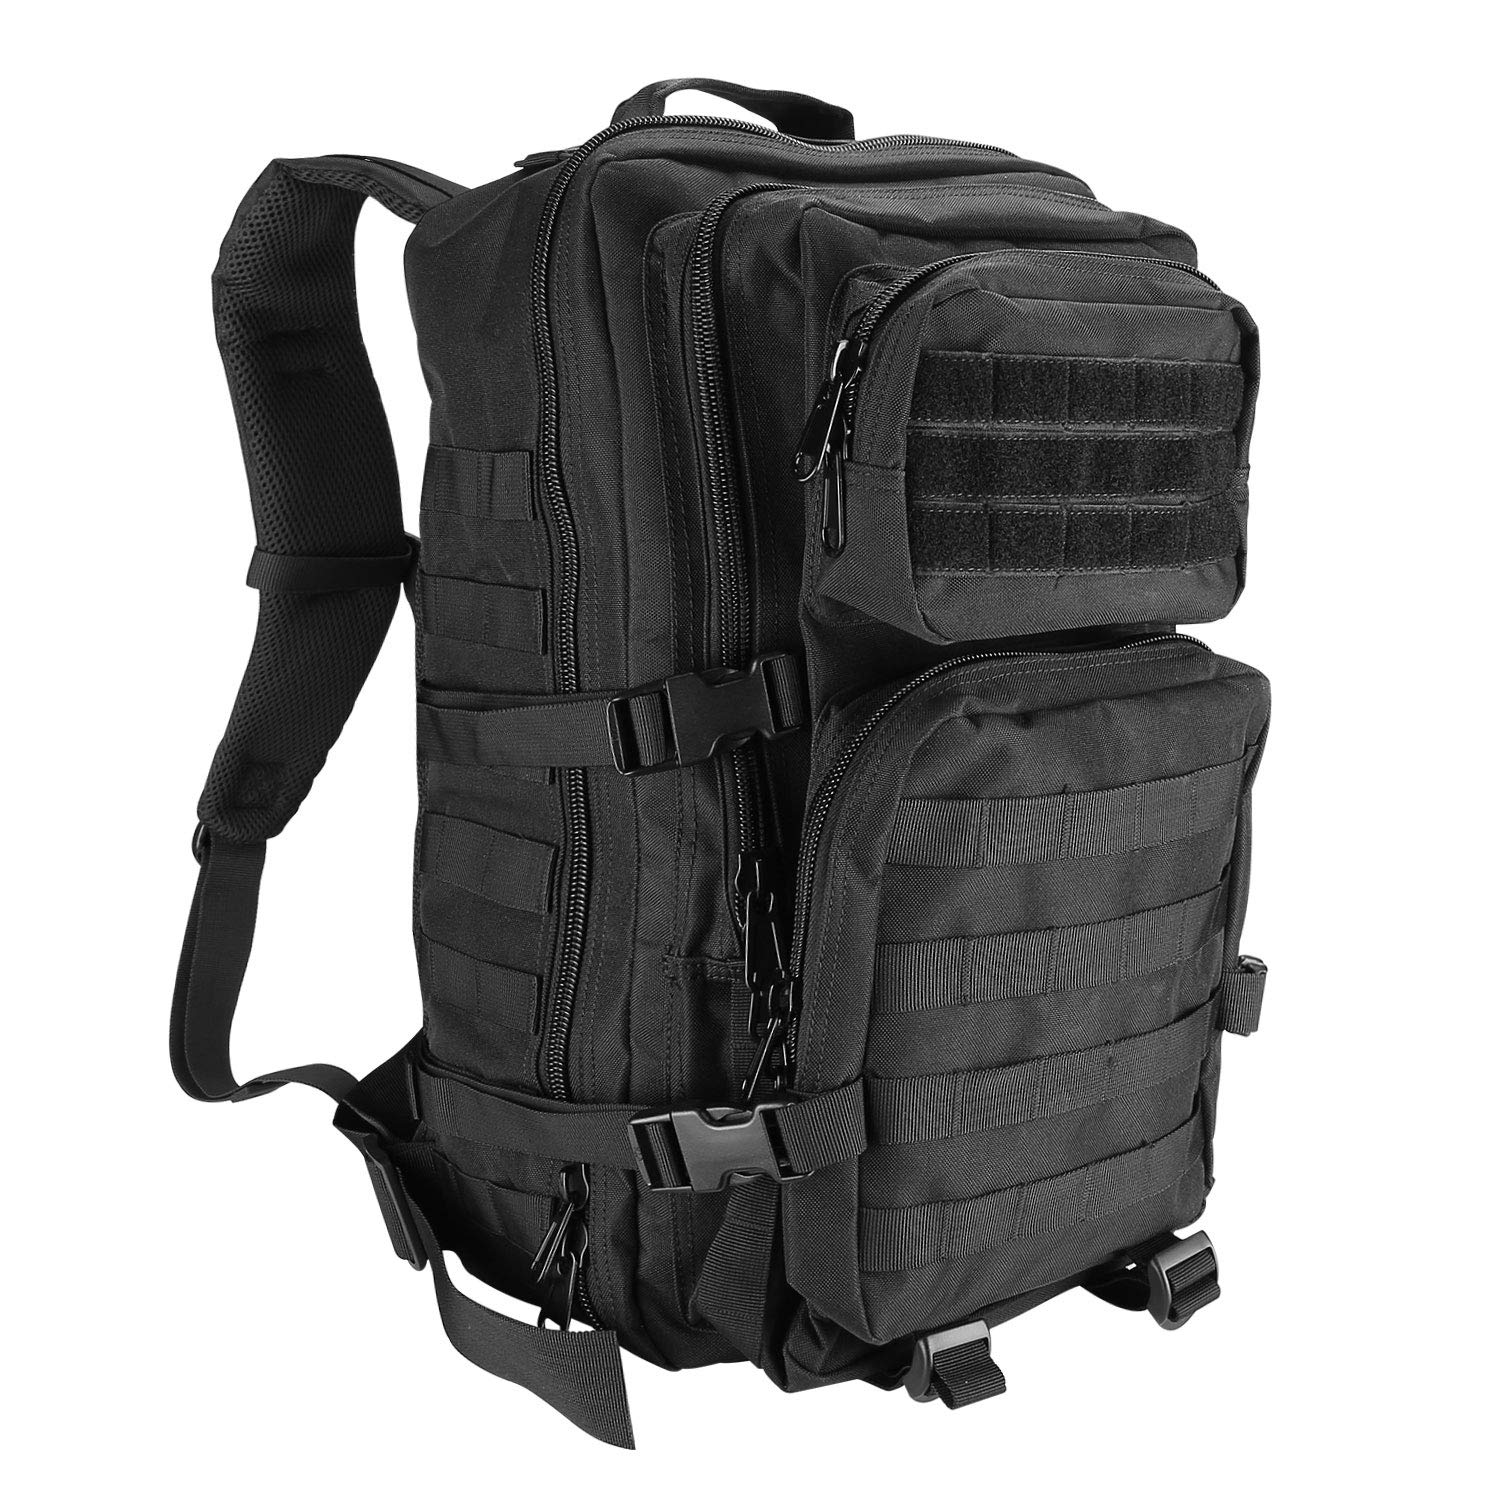 ProCase Tactical Backpack Bag 40L Large Capacity 3 Day Military Army Assault Pack Carry Bag Backpacks Rucksacks for Hunting Trekking Camping Outdoor Activities -Black